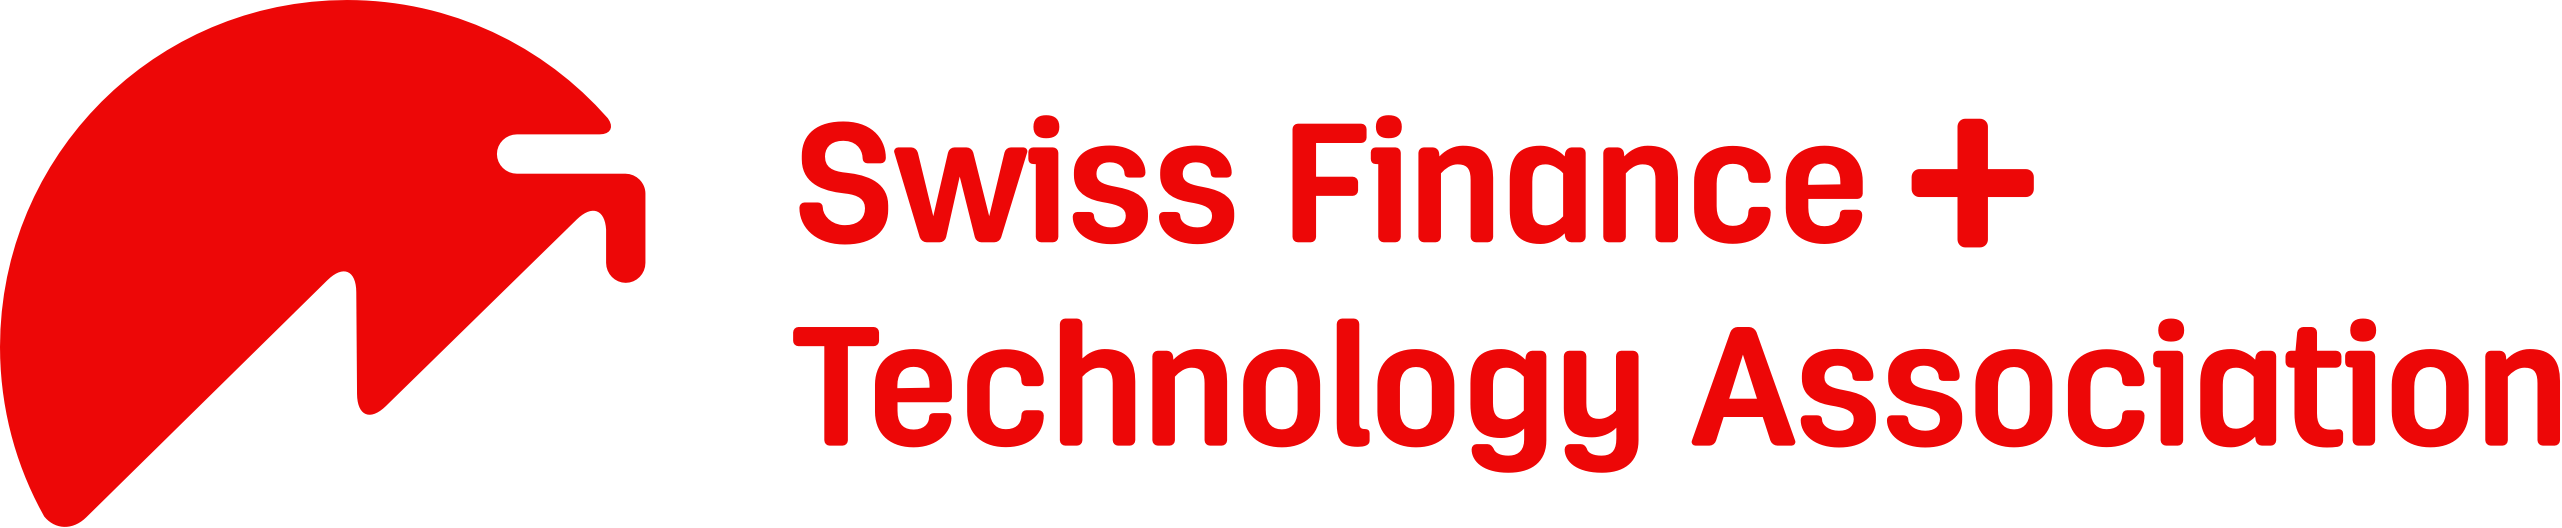 Swiss Finance + Technology Association